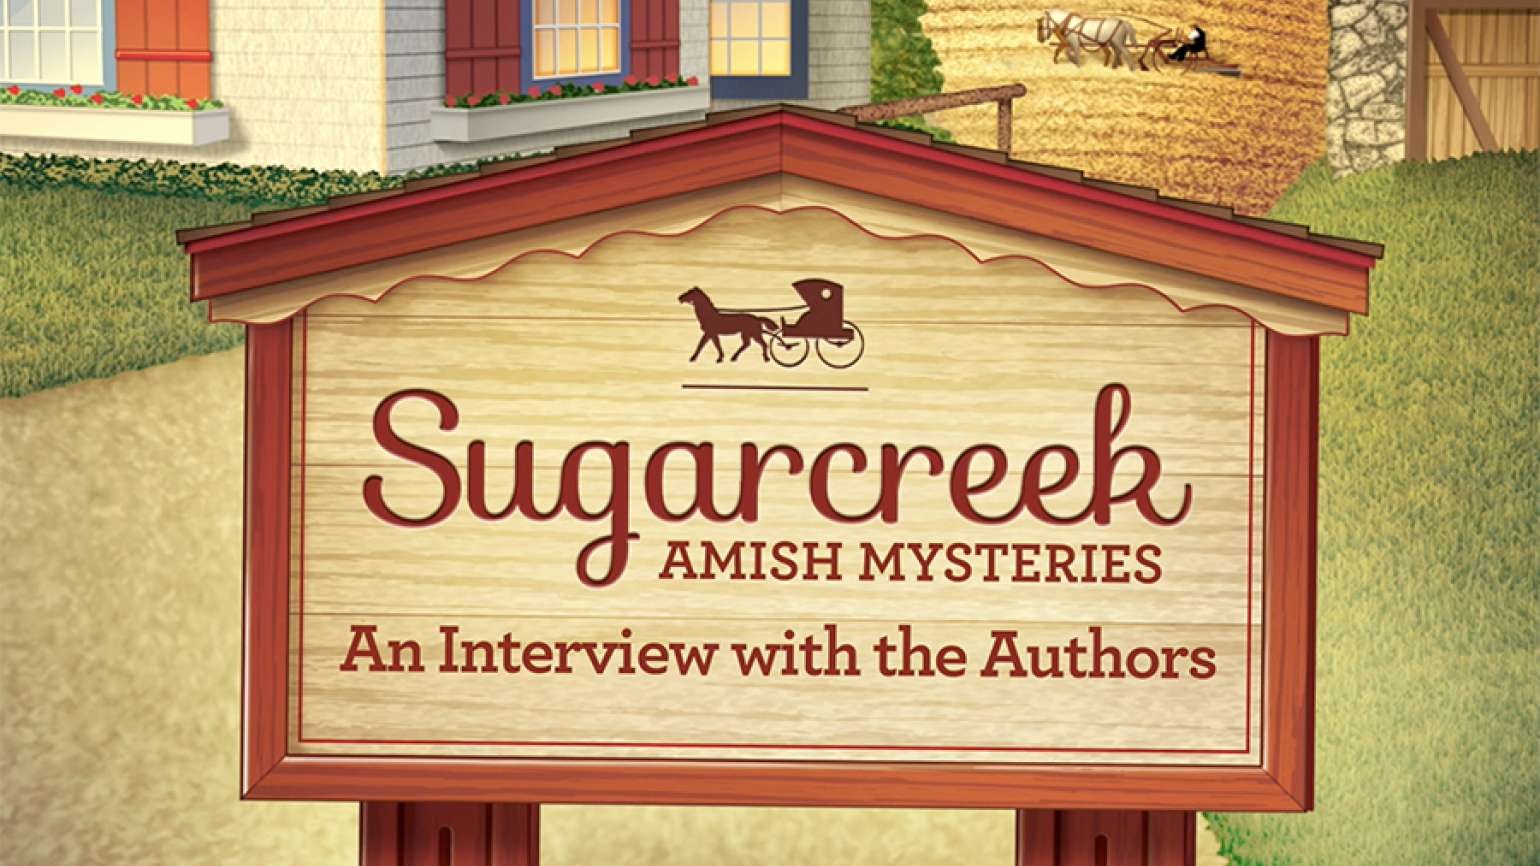 A cover image from Guideposts Books' Sugarcreek Amish Mysteries series